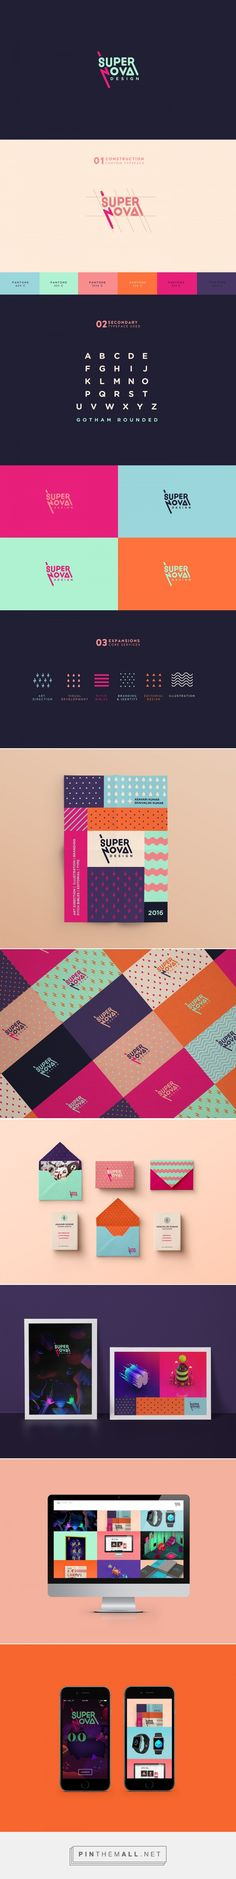 Supernova Design Branding on Behance